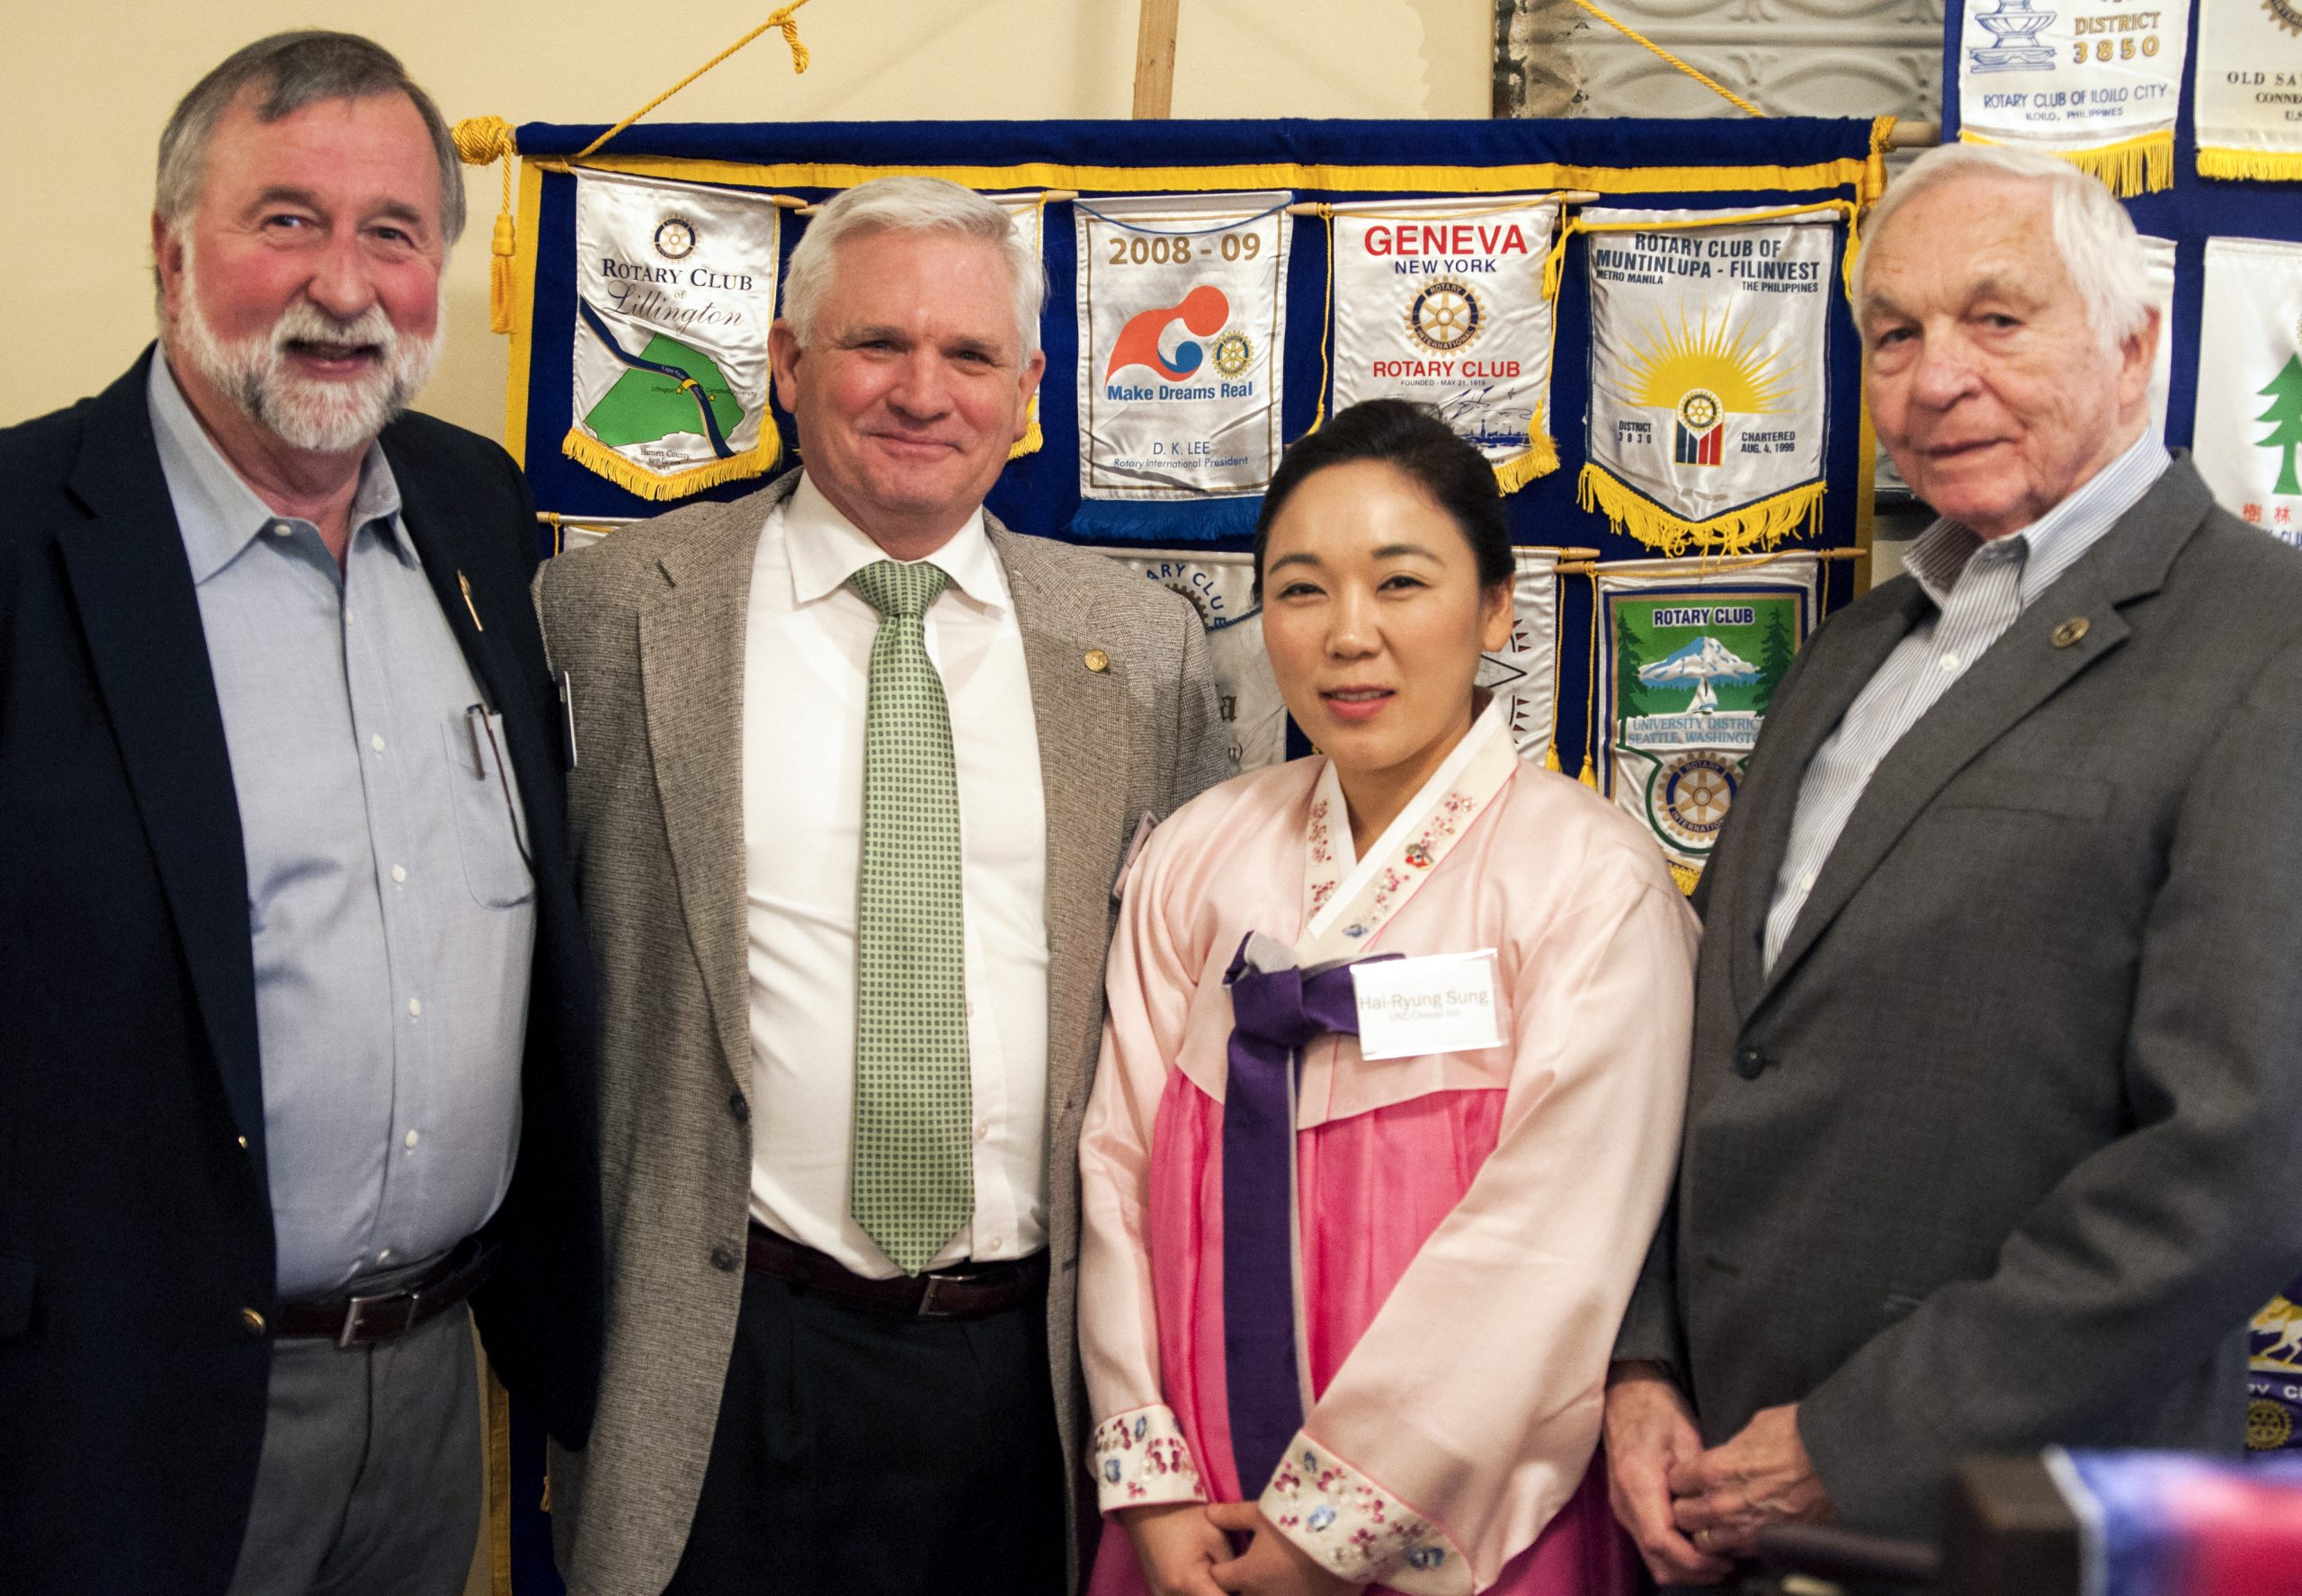 Left to right: Serge Dihoff, former board member and community liaison for the Duke-UNC Rotary Peace Center; Linwood Stanley Morton, director of the Roxboro Rotary Club; Hai-Ryung Sung, UNC doctoral student; Don Buckner; chair of the Rotary Foundation for the Roxboro Rotary Club. Photo by Shannon Harvey.